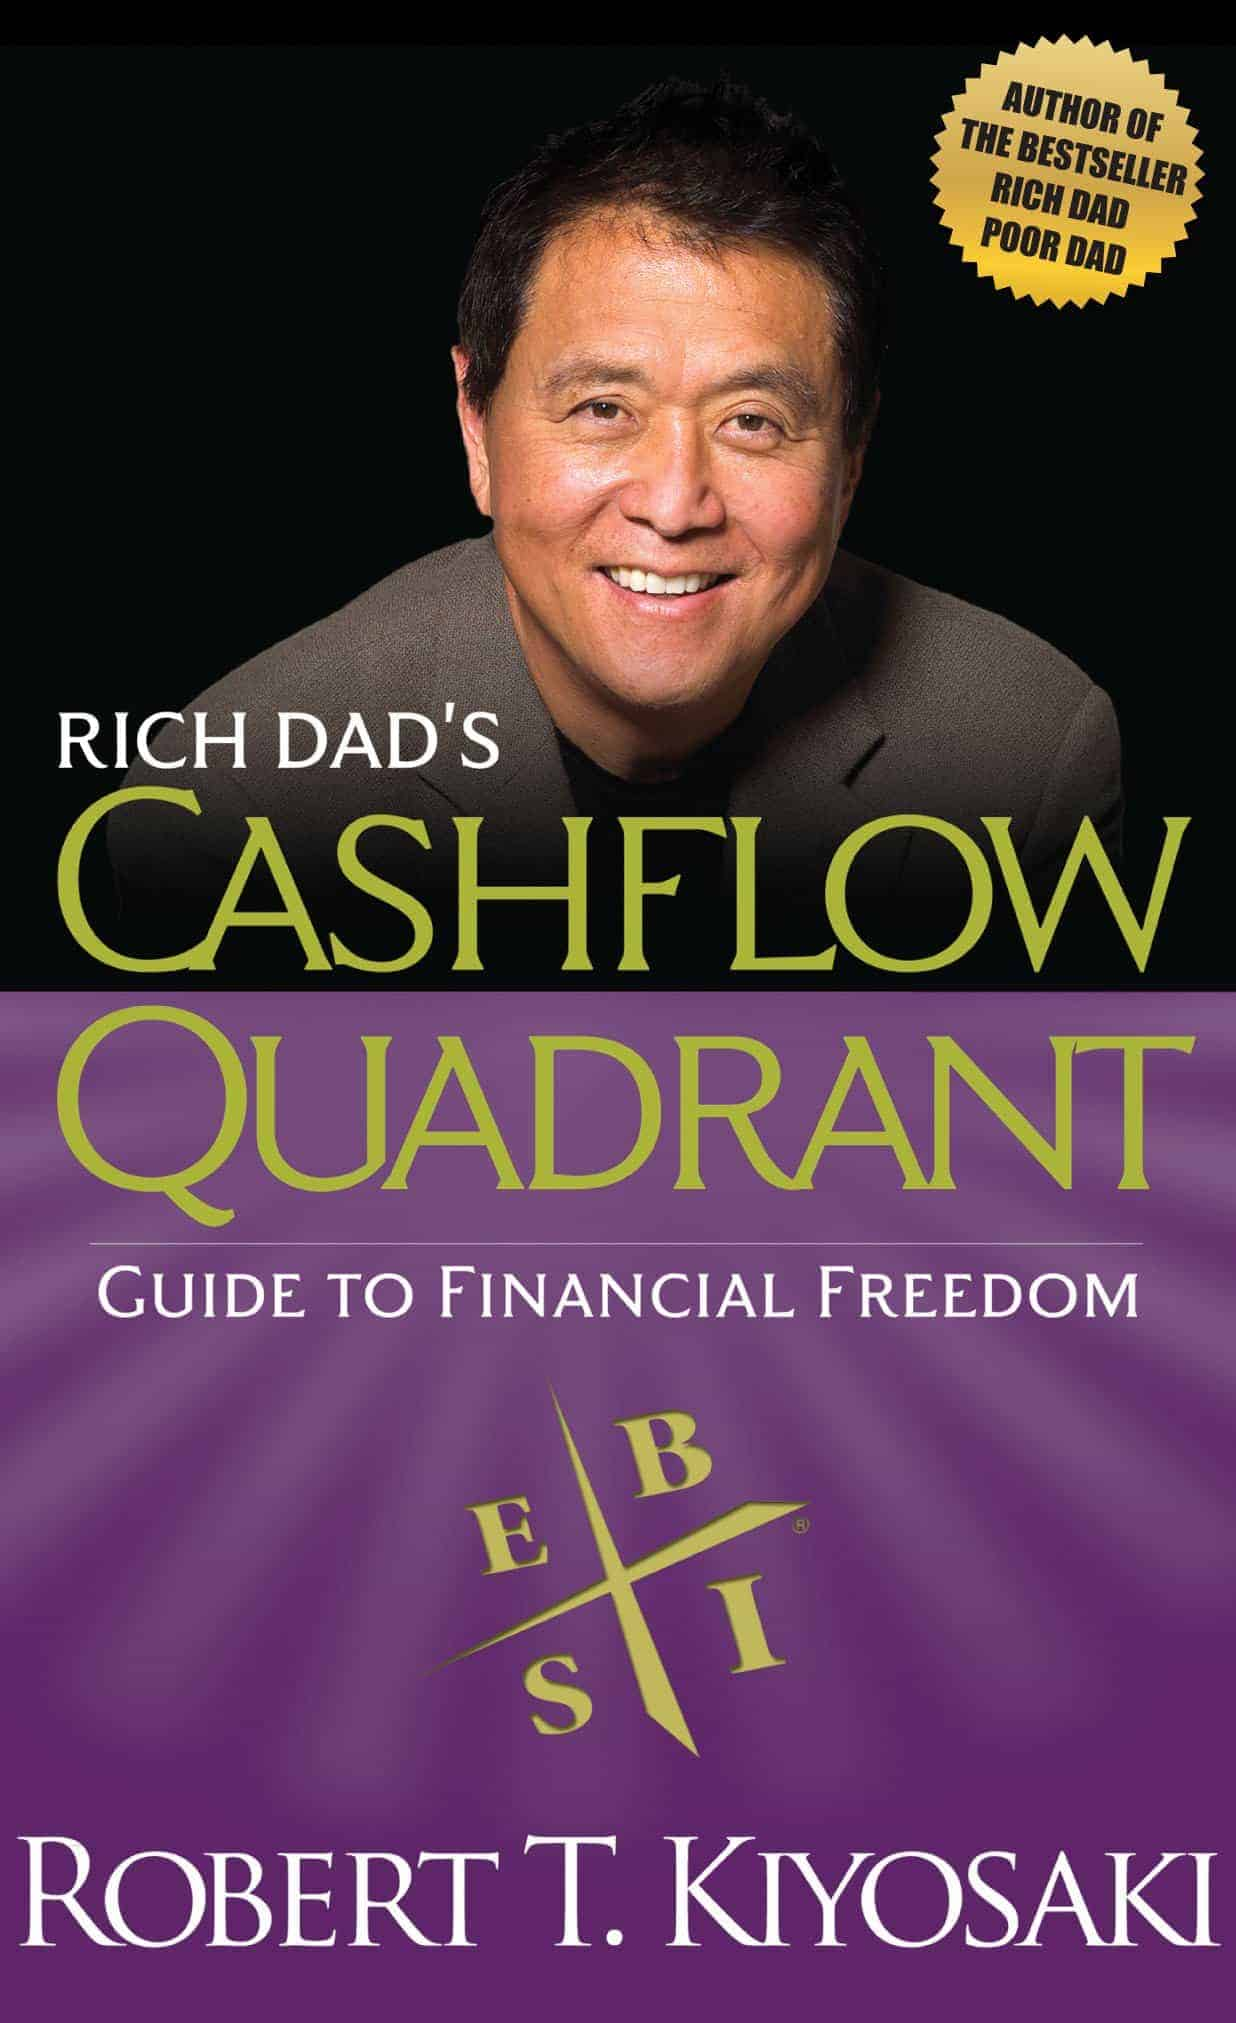 The 12 Best Personal Finance Books of All Times